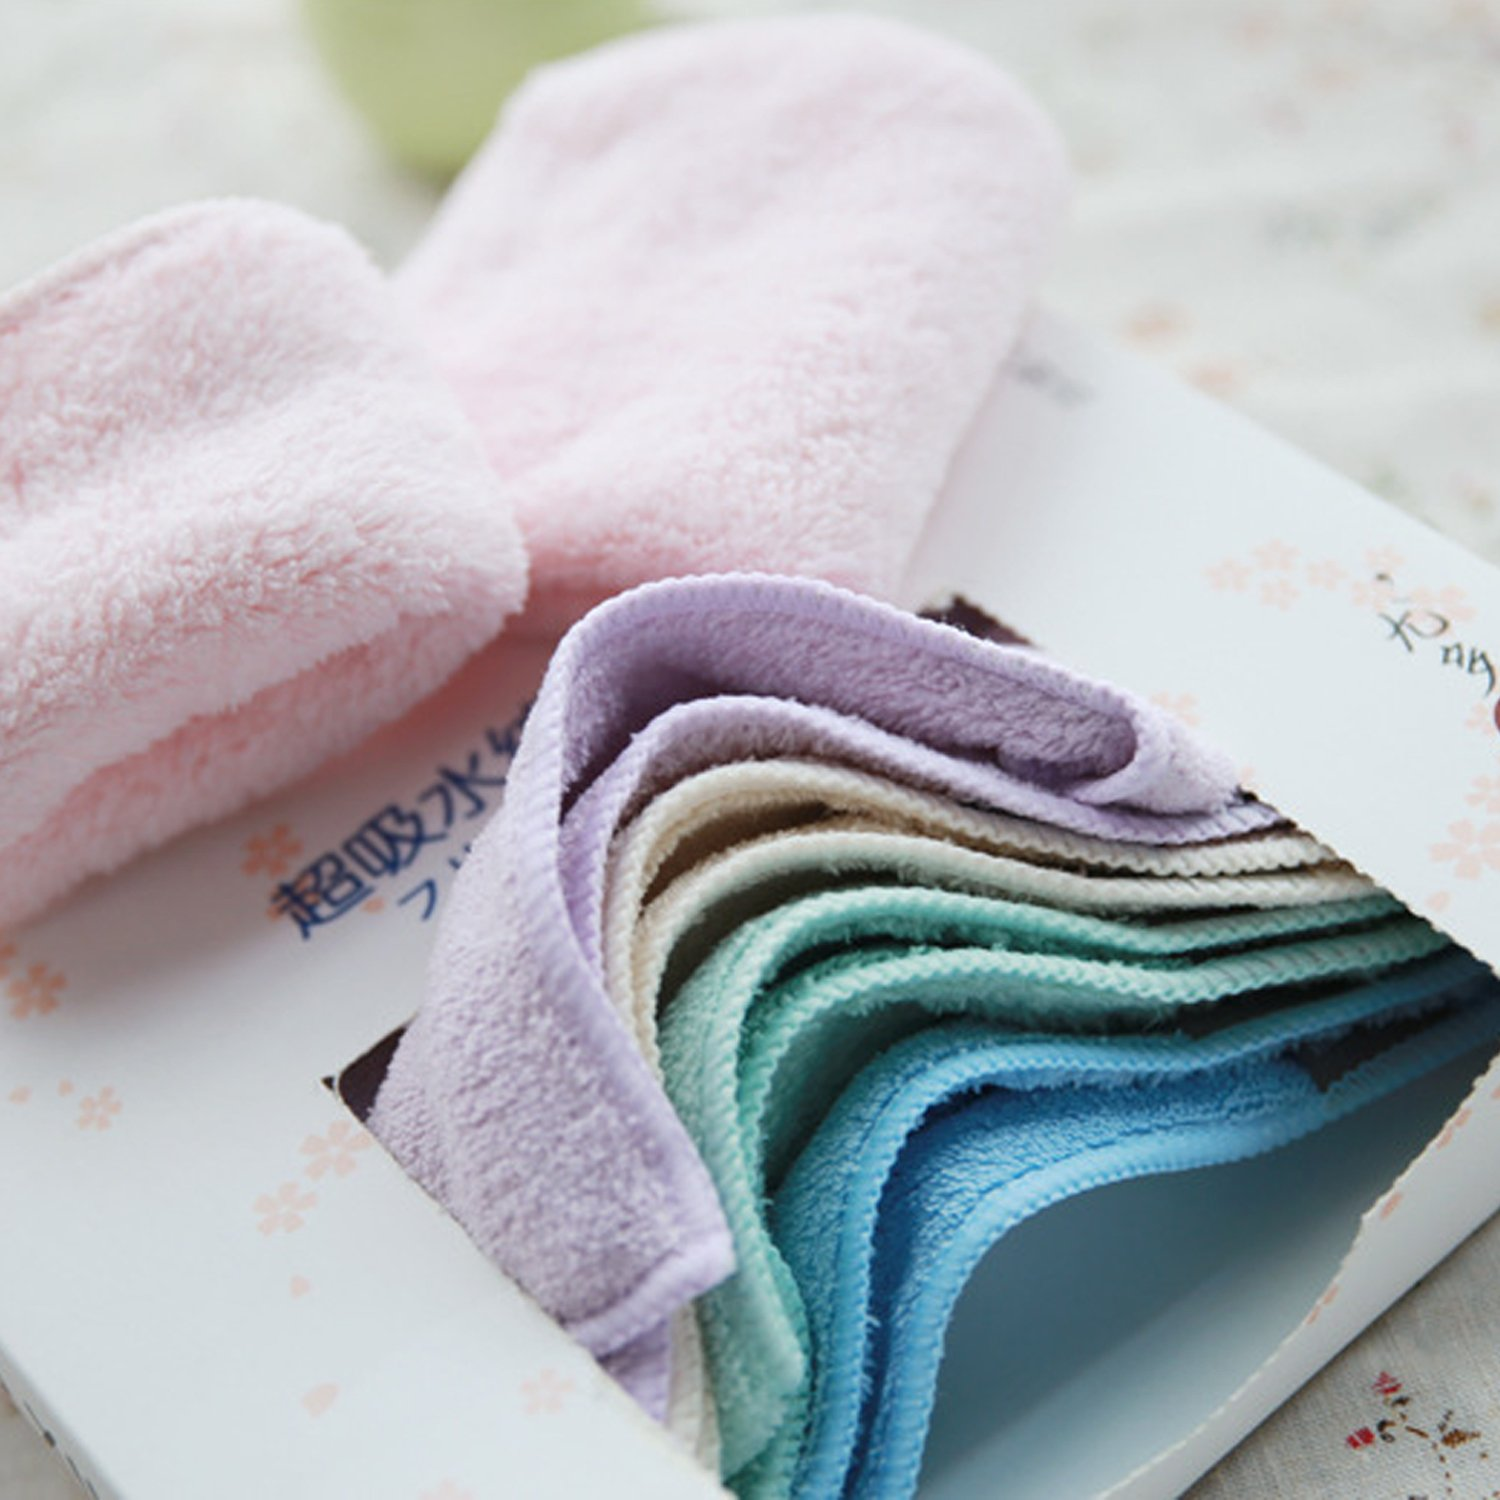 SONARIN Reusable Micro Fibre Cloth Baby Wipes Baby Towel,softer,30 Wipes 3 packs